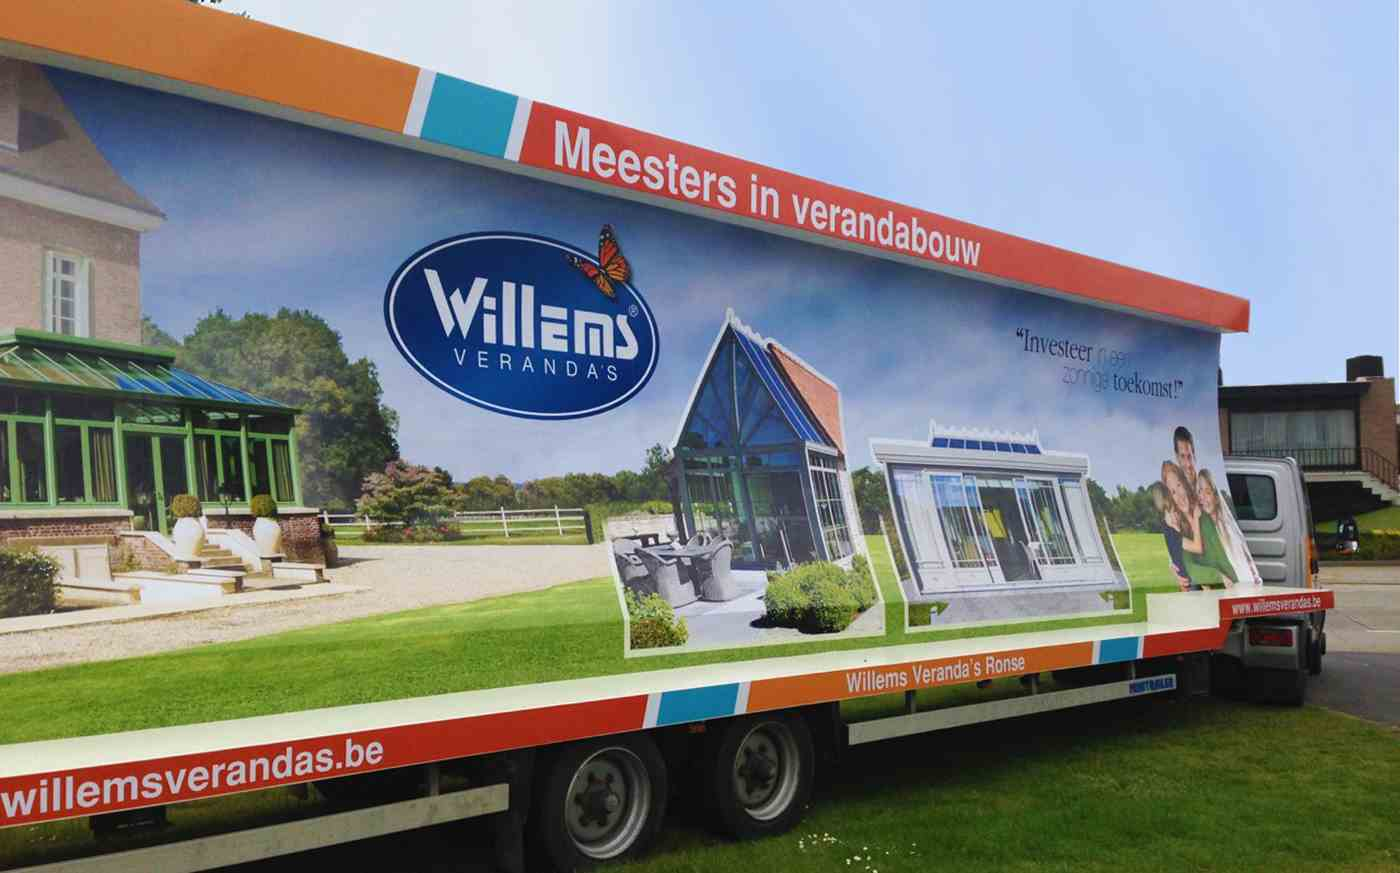 Willems publitrailer image